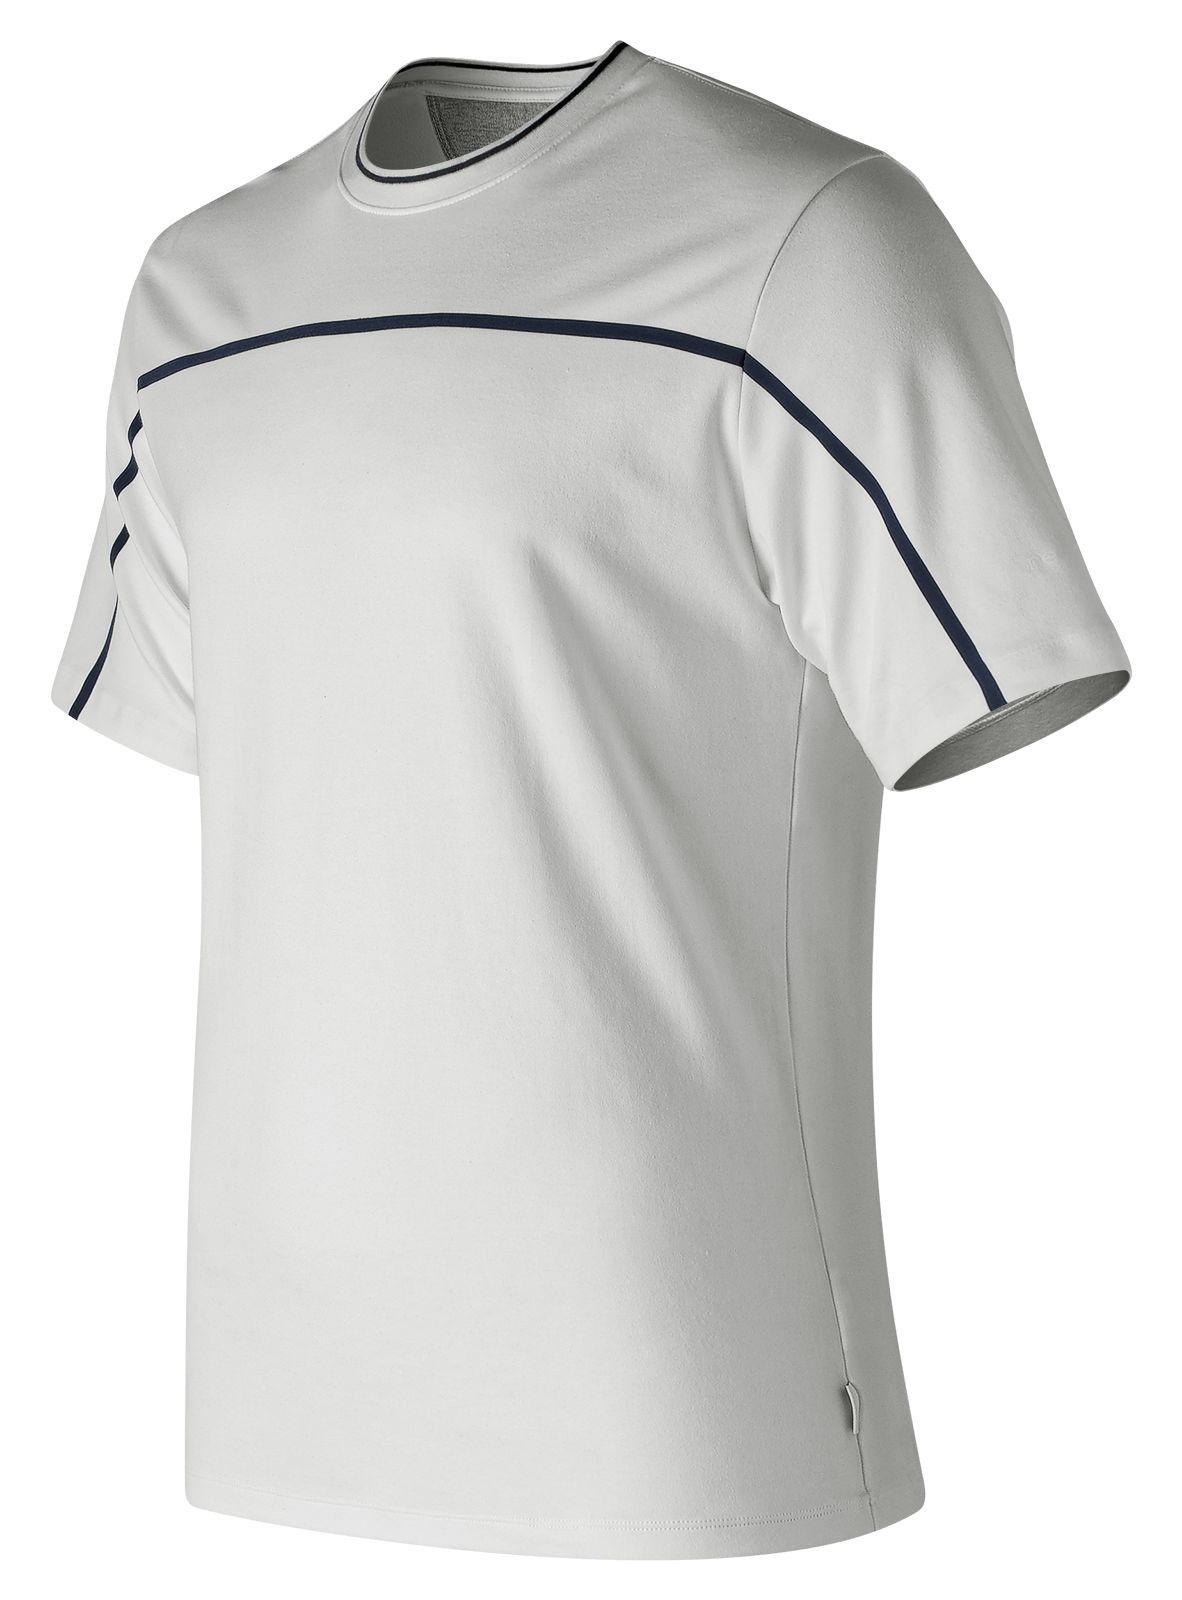 Men's NB Athletics Select Tee